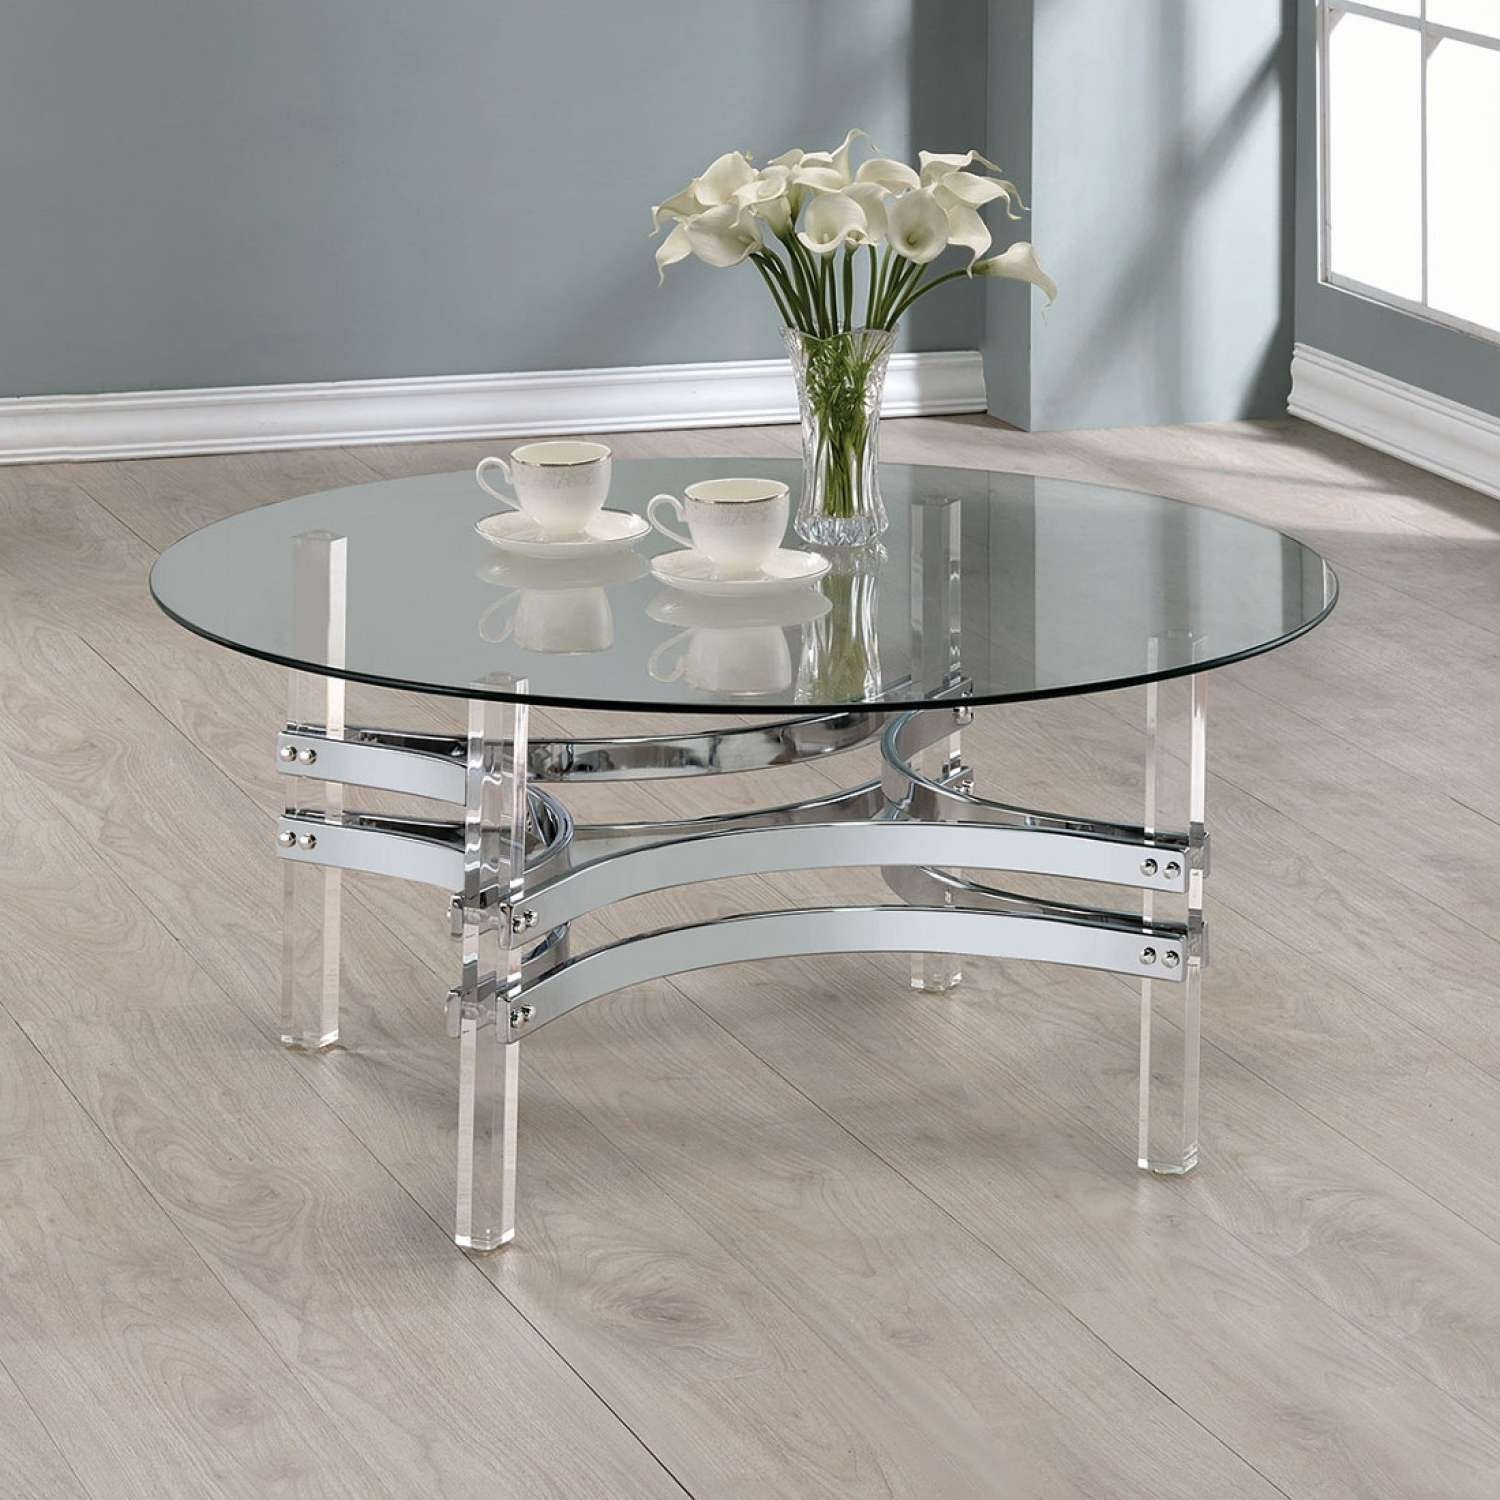 Coffee Table : Wonderful Round Glass Top Coffee Table Triangle Regarding 2018 All Glass Coffee Tables (View 12 of 20)